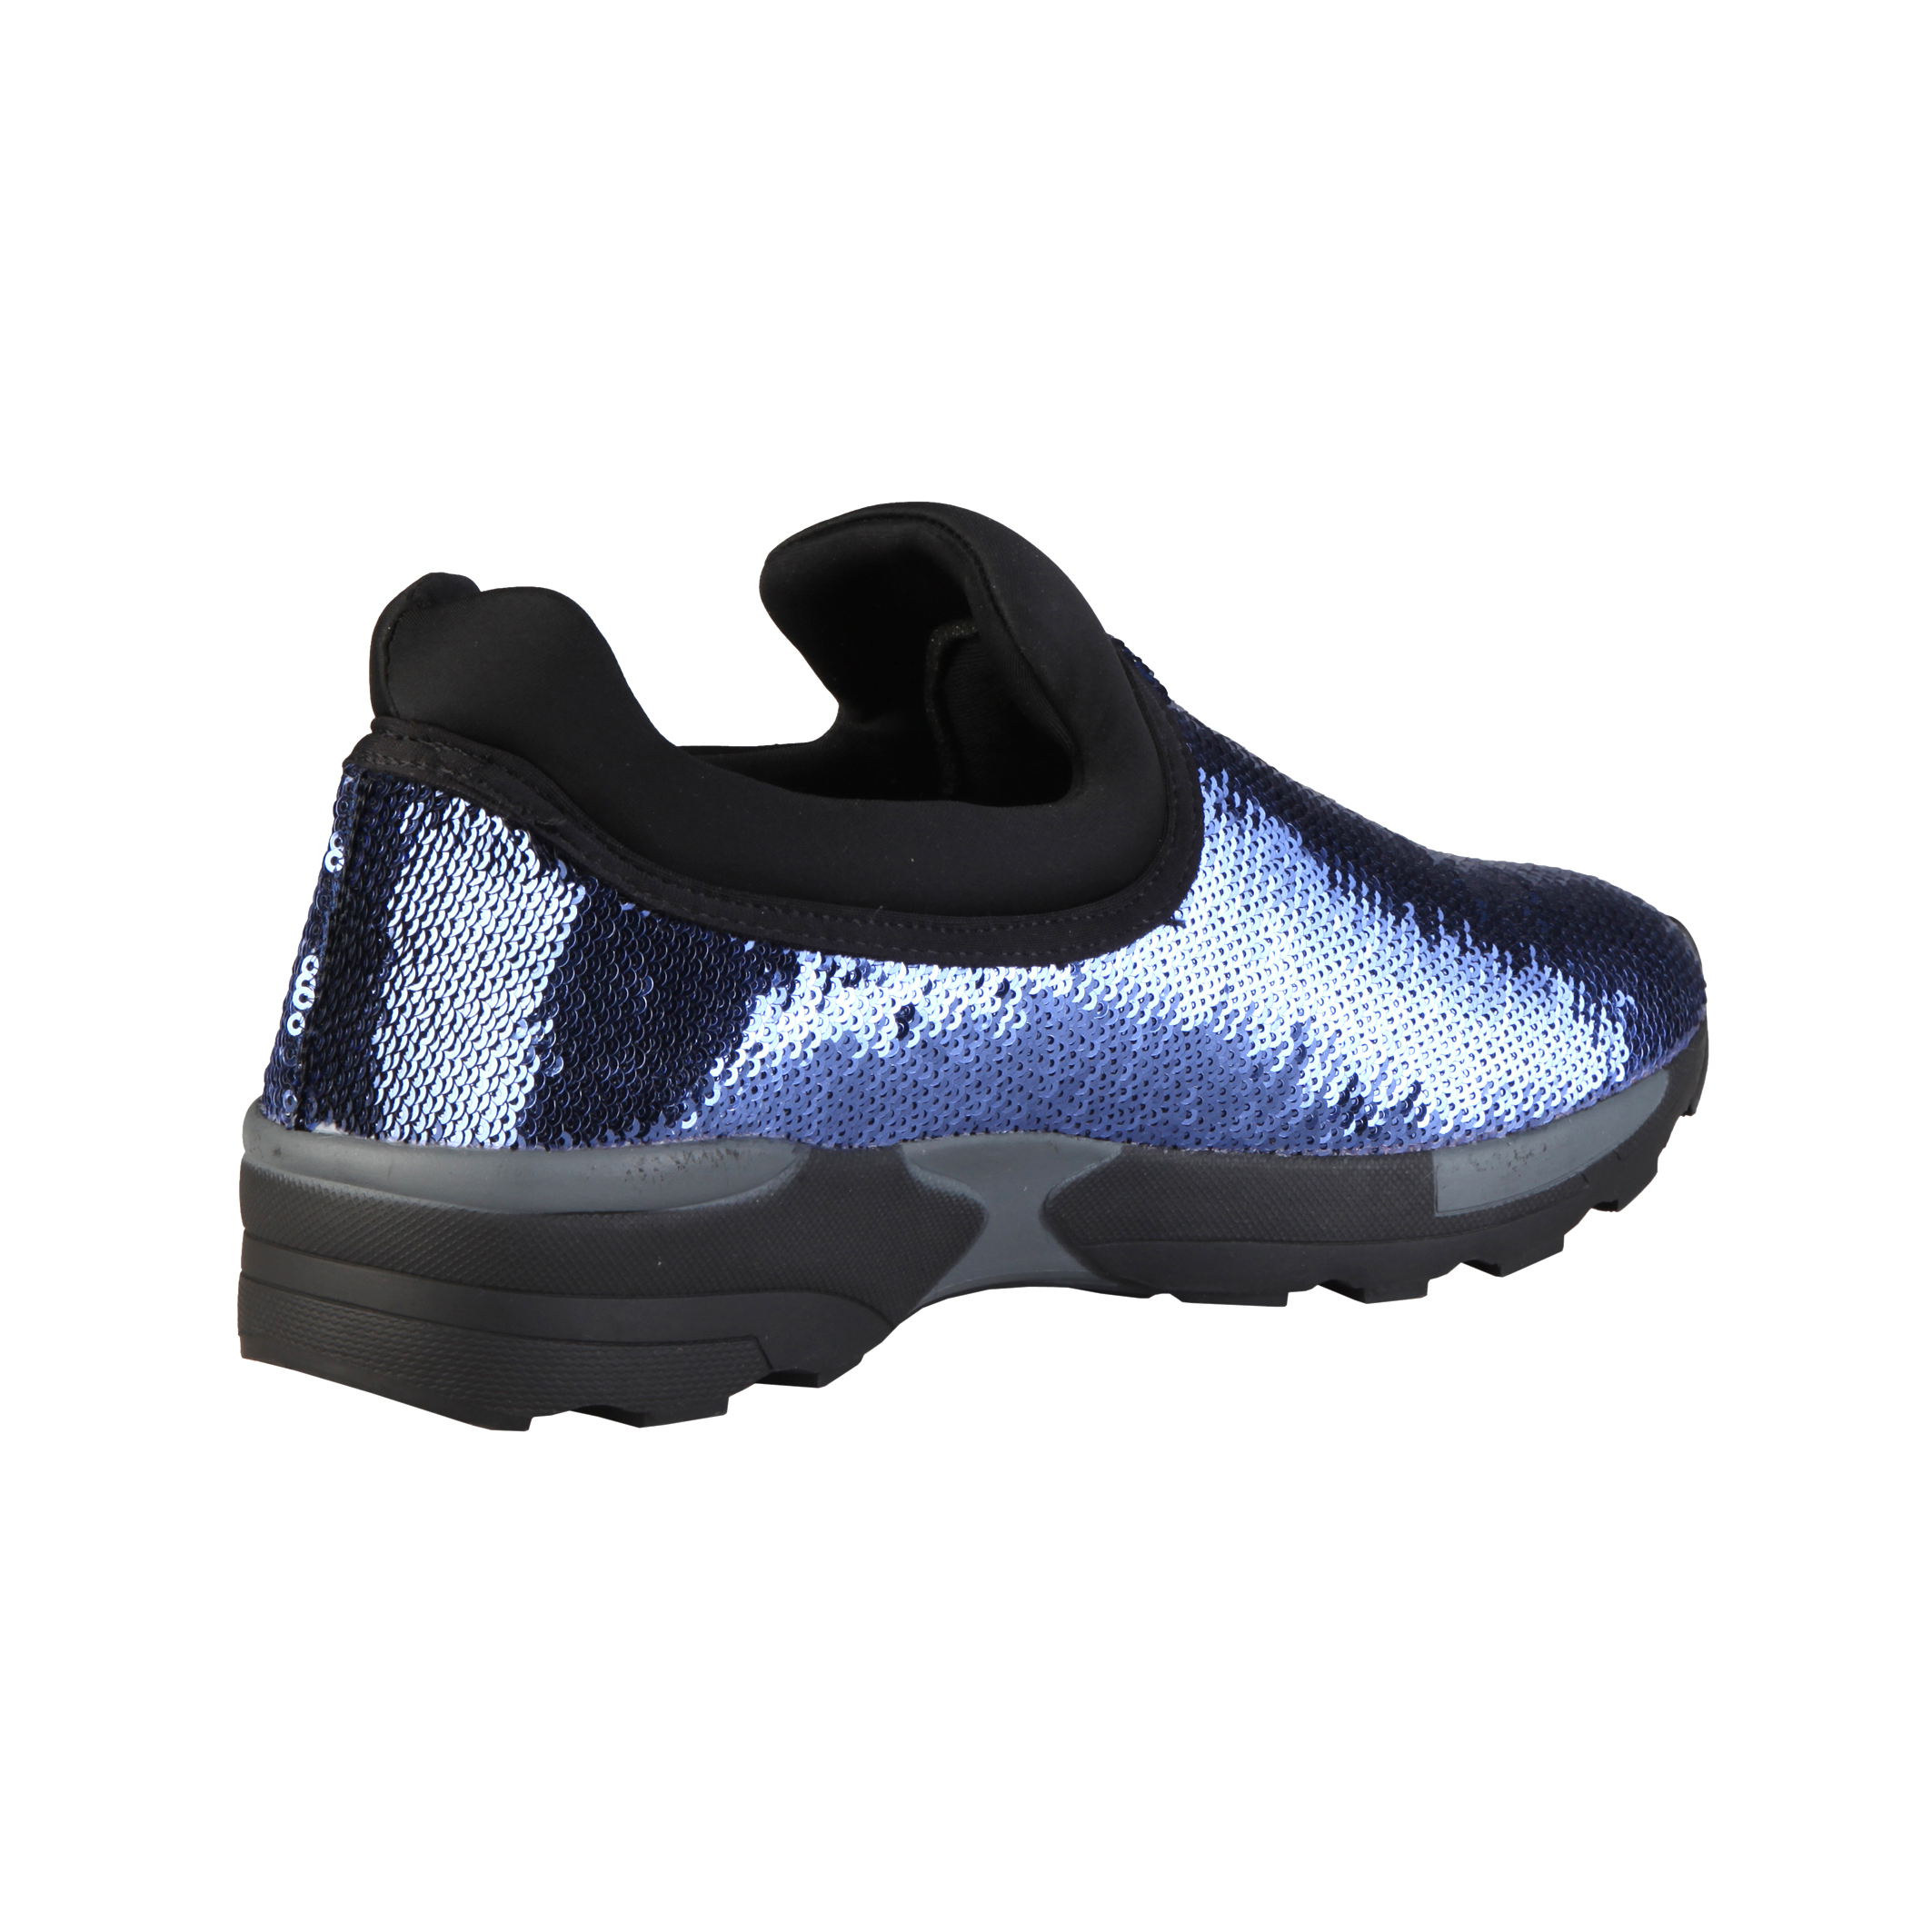 Chaussures  Ana Lublin PETRA blue